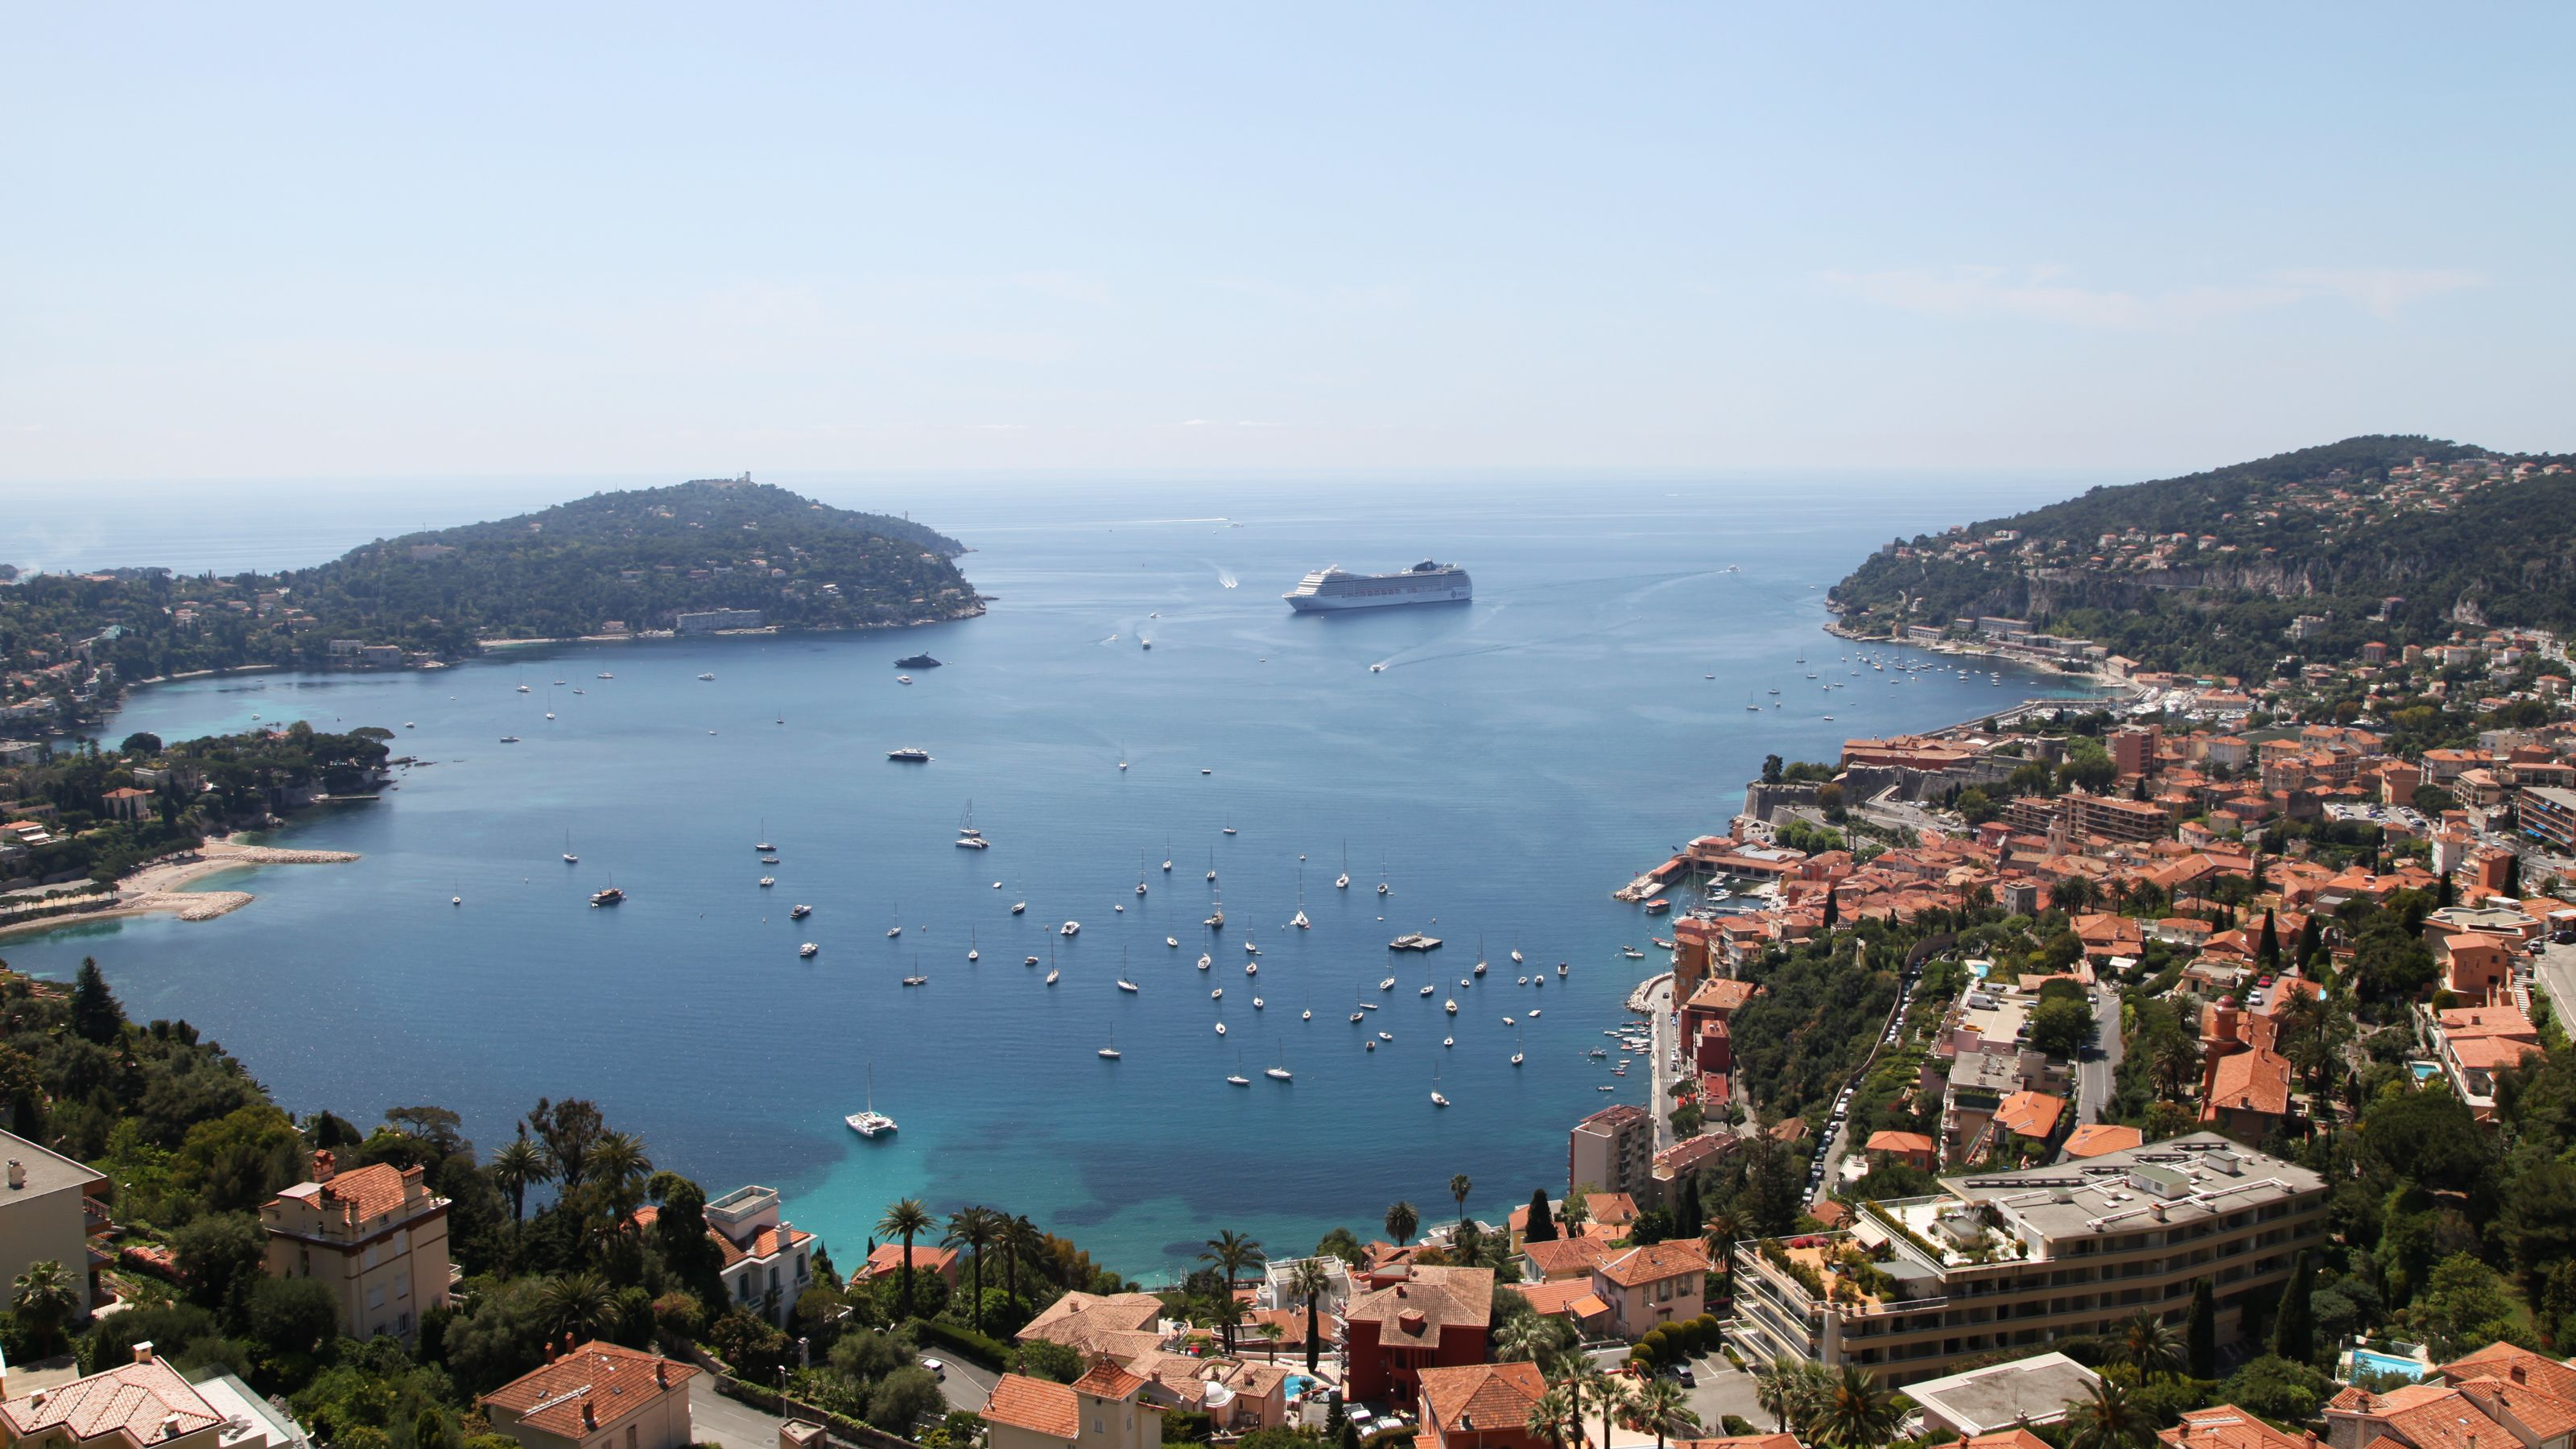 Scattered boats and cruise ship in the clear waters of France